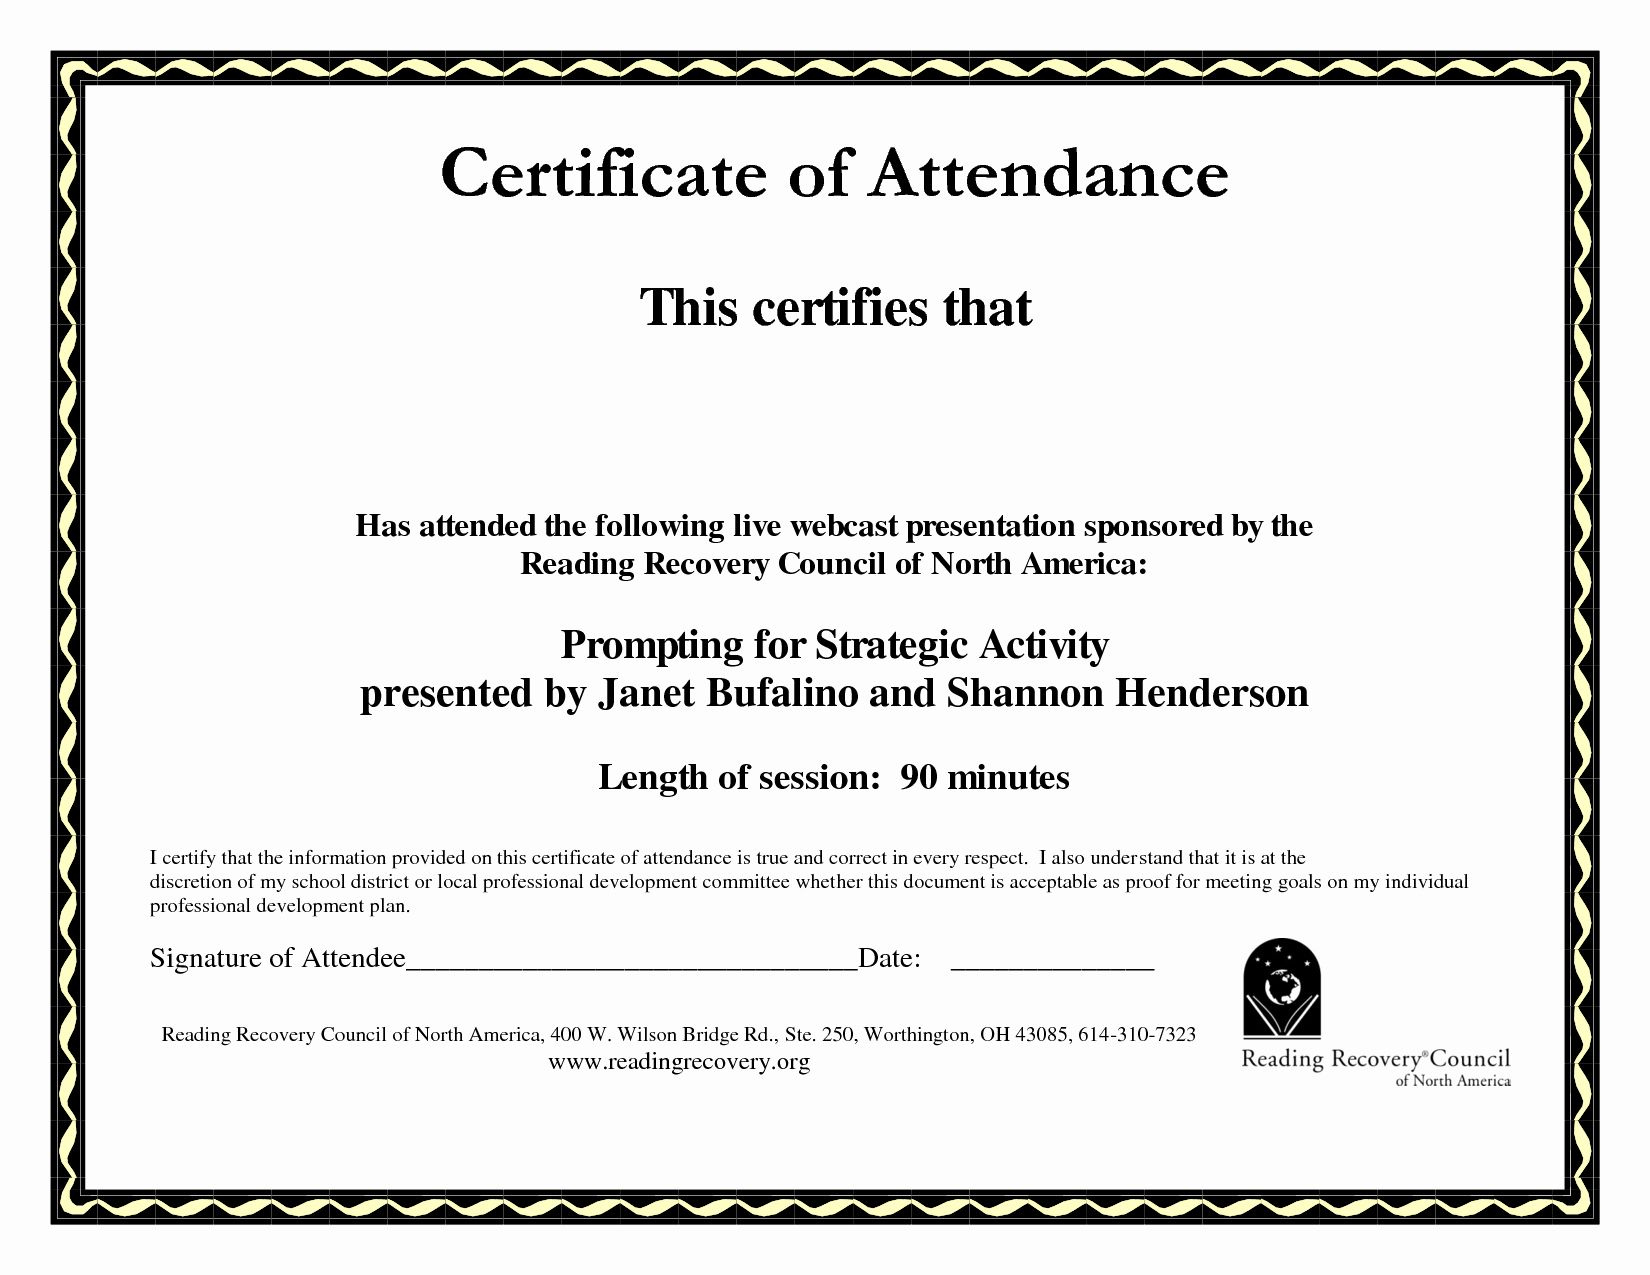 The Enchanting 30 Perfect Attendance Certificate Editable with regard to Amazing Perfect Attendance Certificate Template Editable